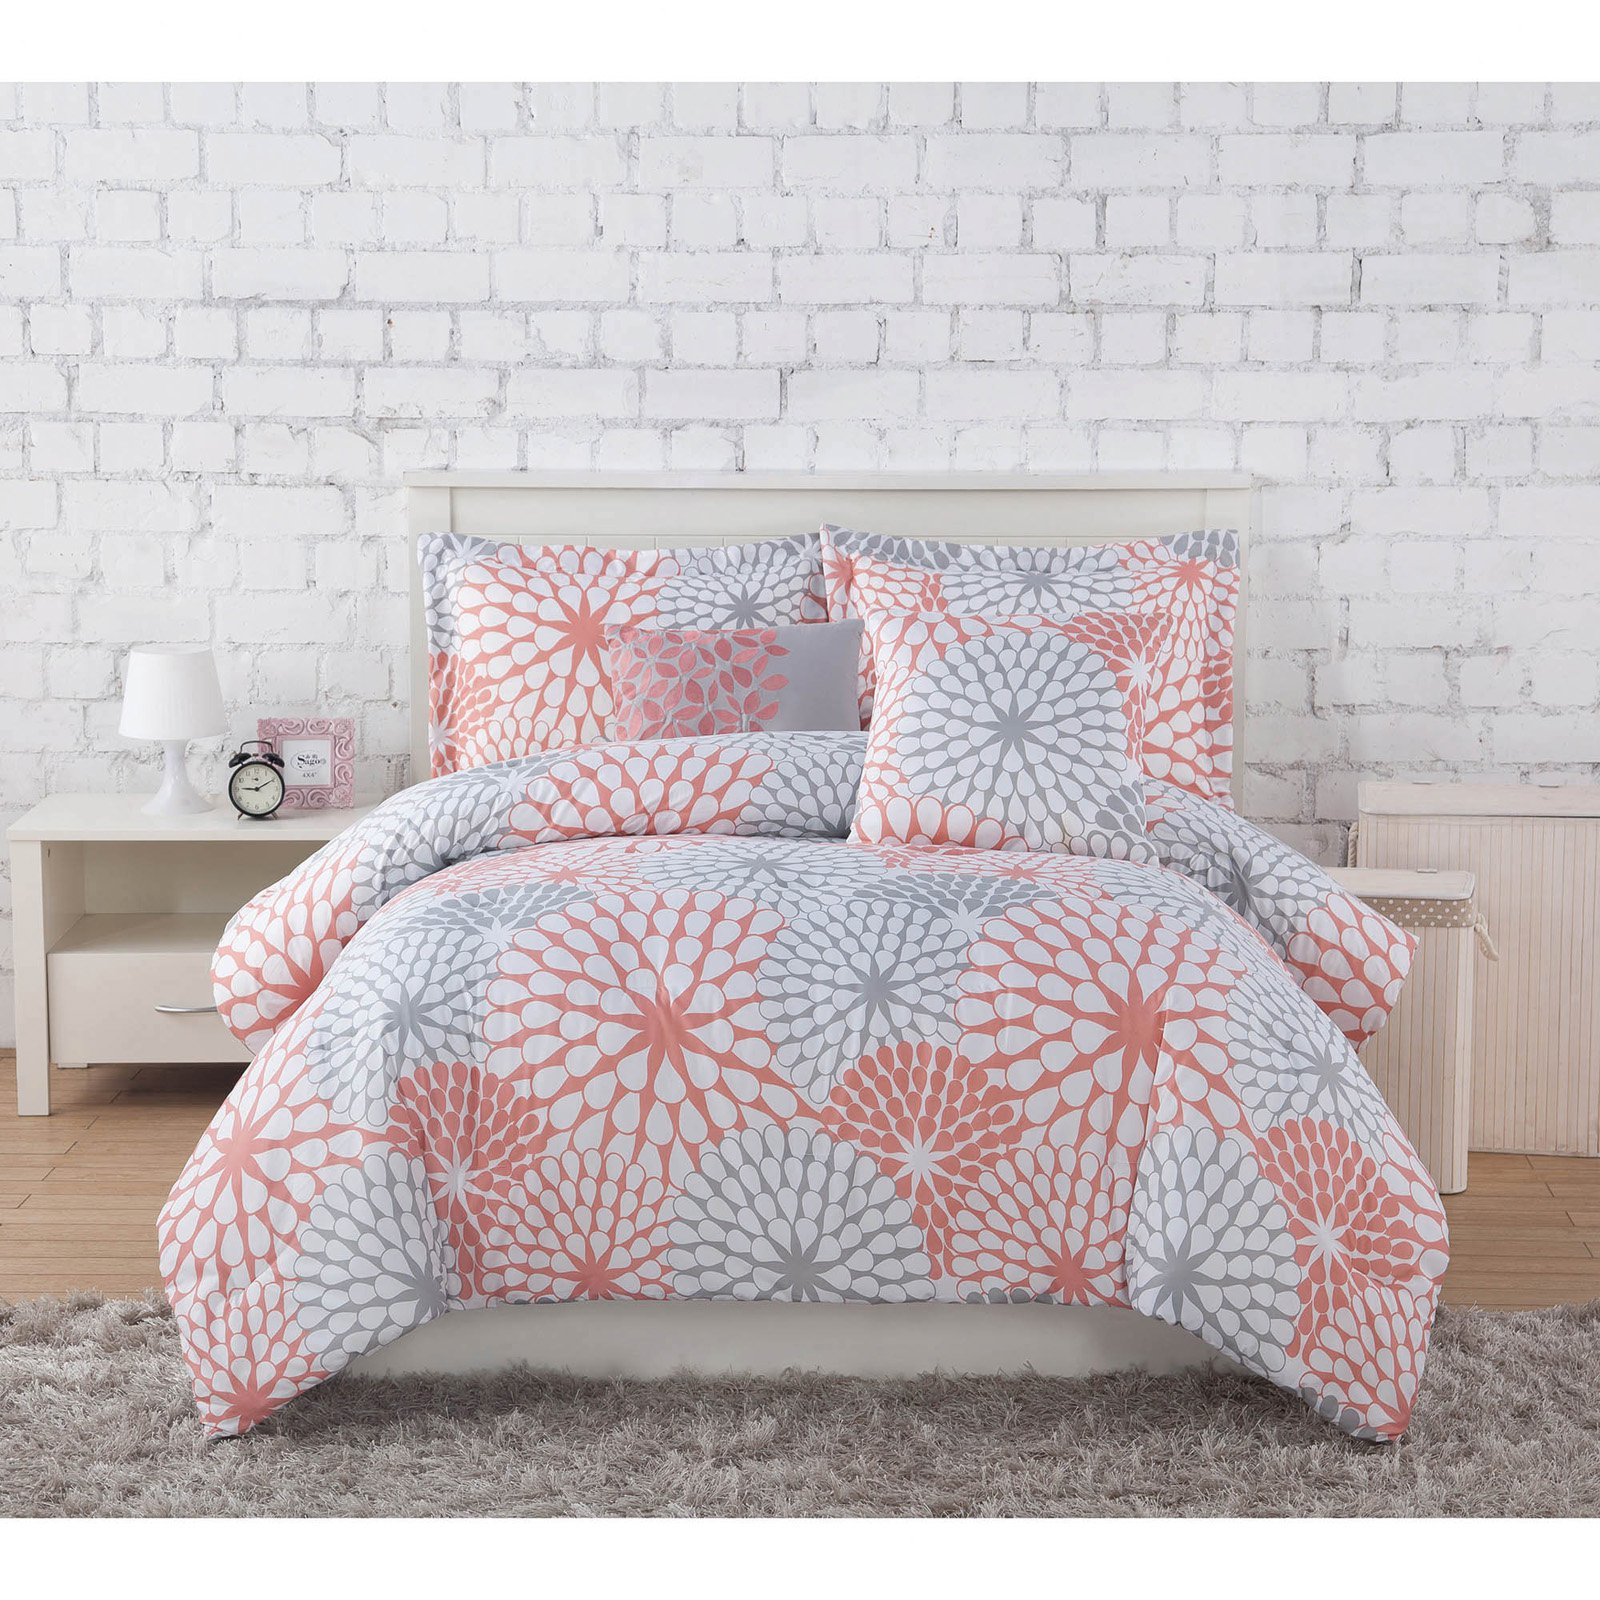 Stella Comforter Set By Creative Home Ideas Size Full Queen Comforter Sets Queen Bedding Sets Bedding Sets